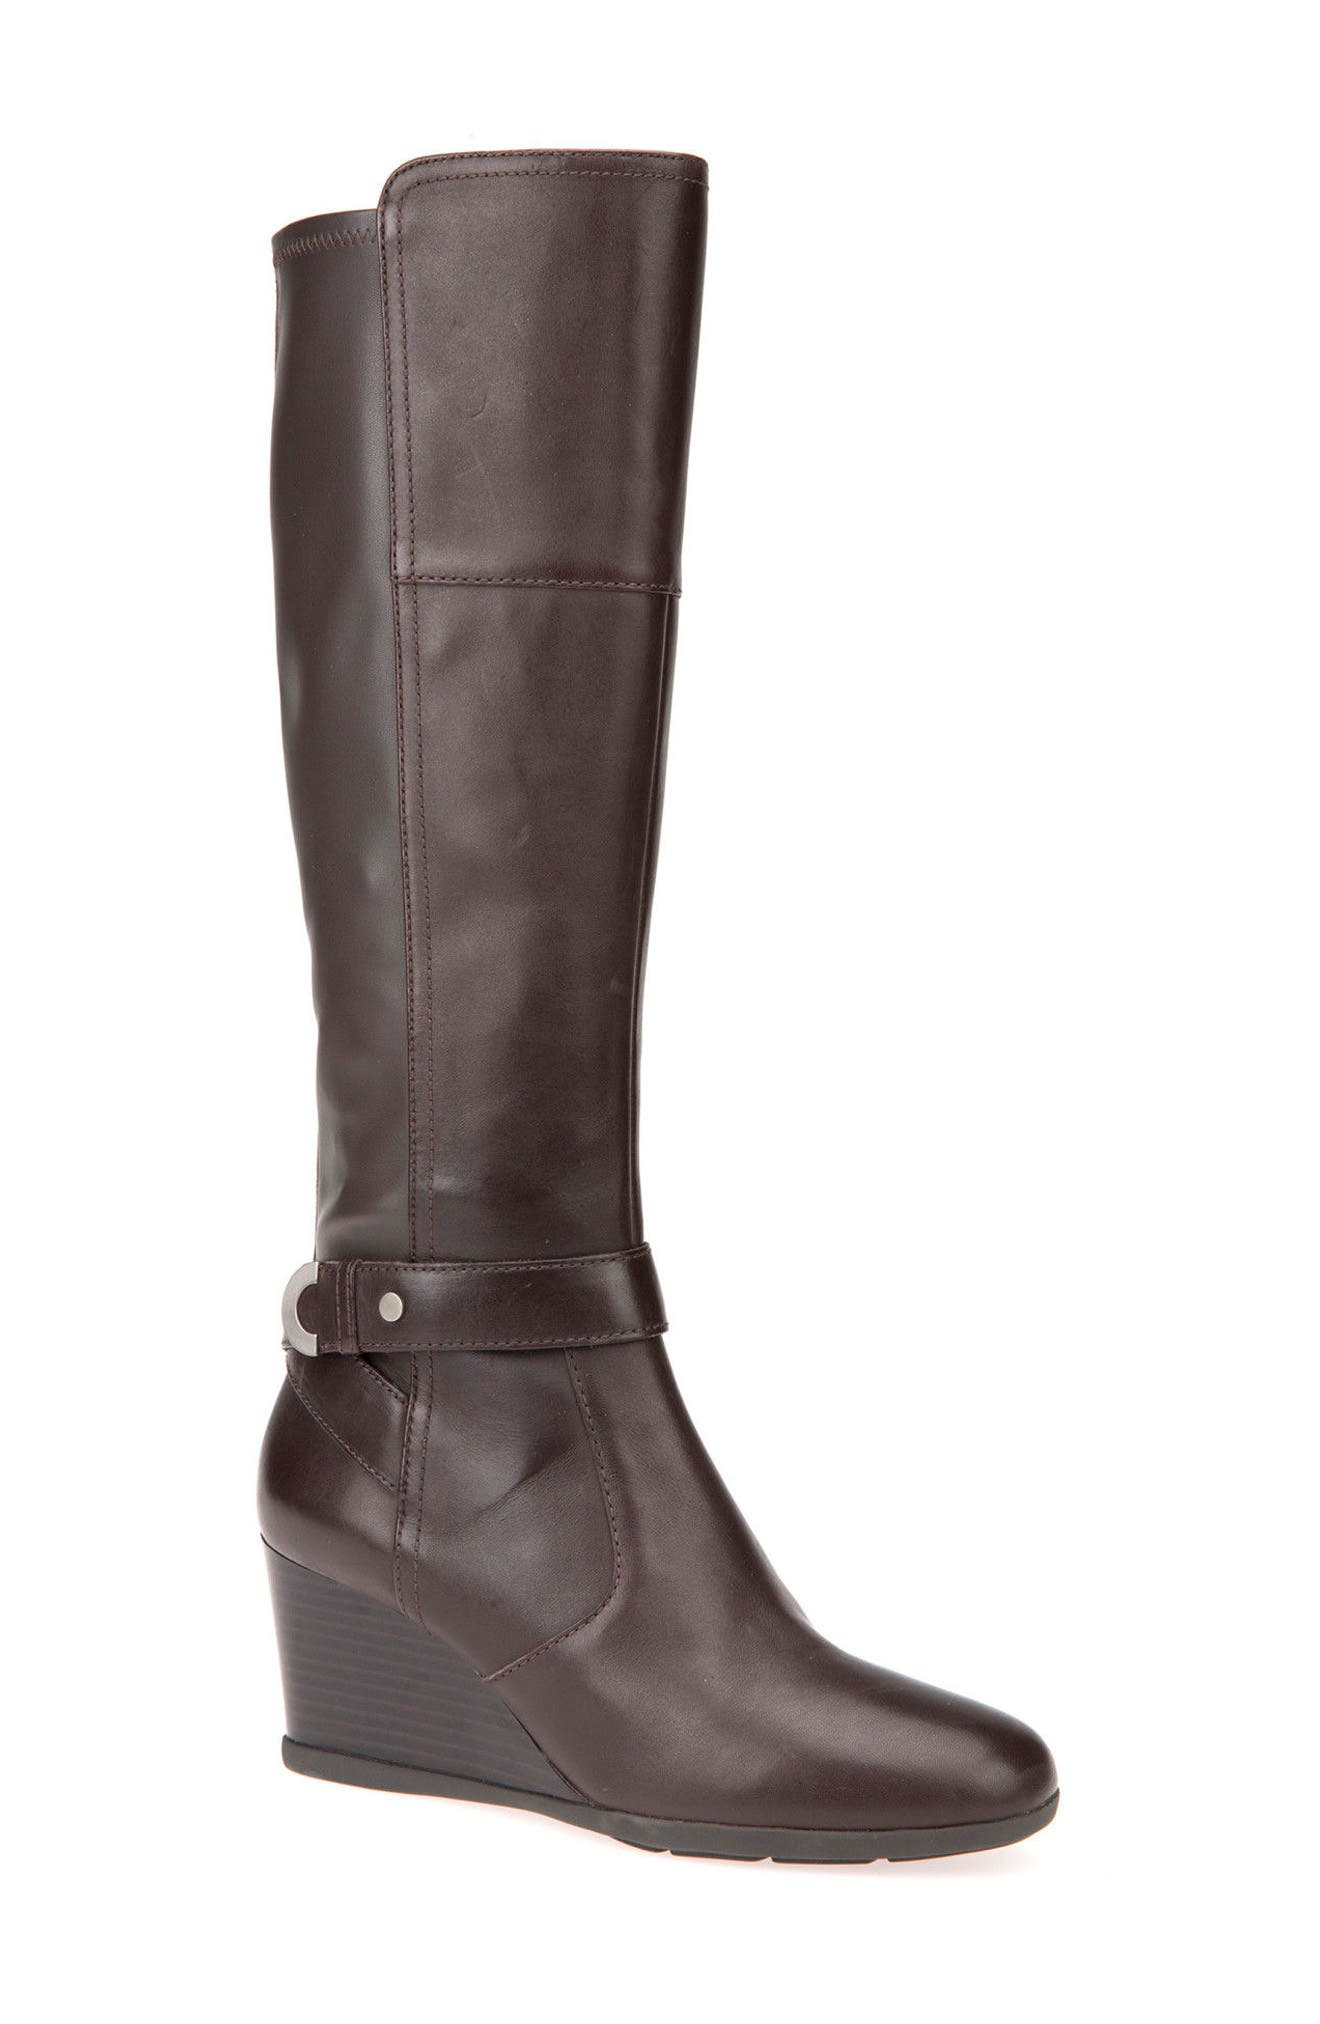 Inspiration Knee High Wedge Boot,                             Main thumbnail 1, color,                             COFFEE LEATHER